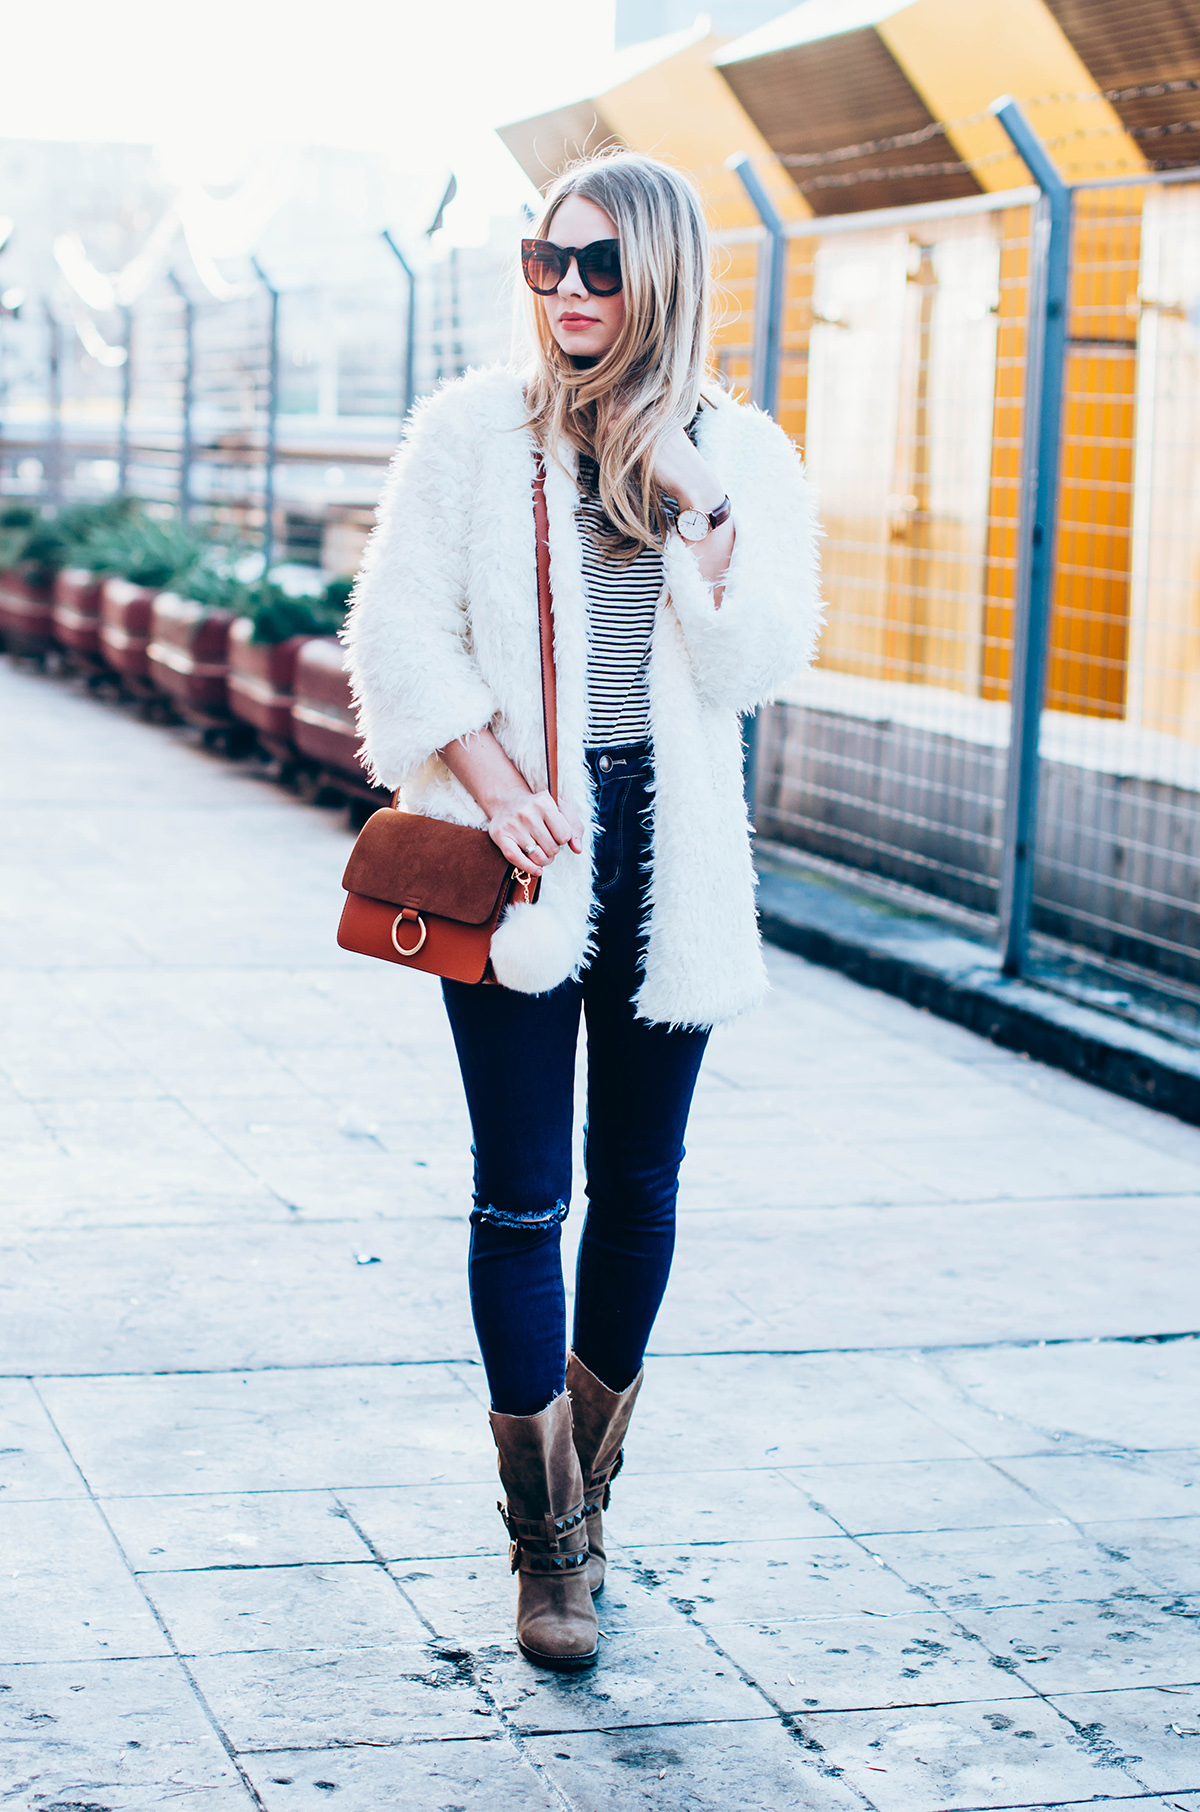 white-fluffy-cardgan-ripped-skinny-jeans-suede-boots-camel-scarf-fluffy-keyrng-cat-eye-sunglasses (8)